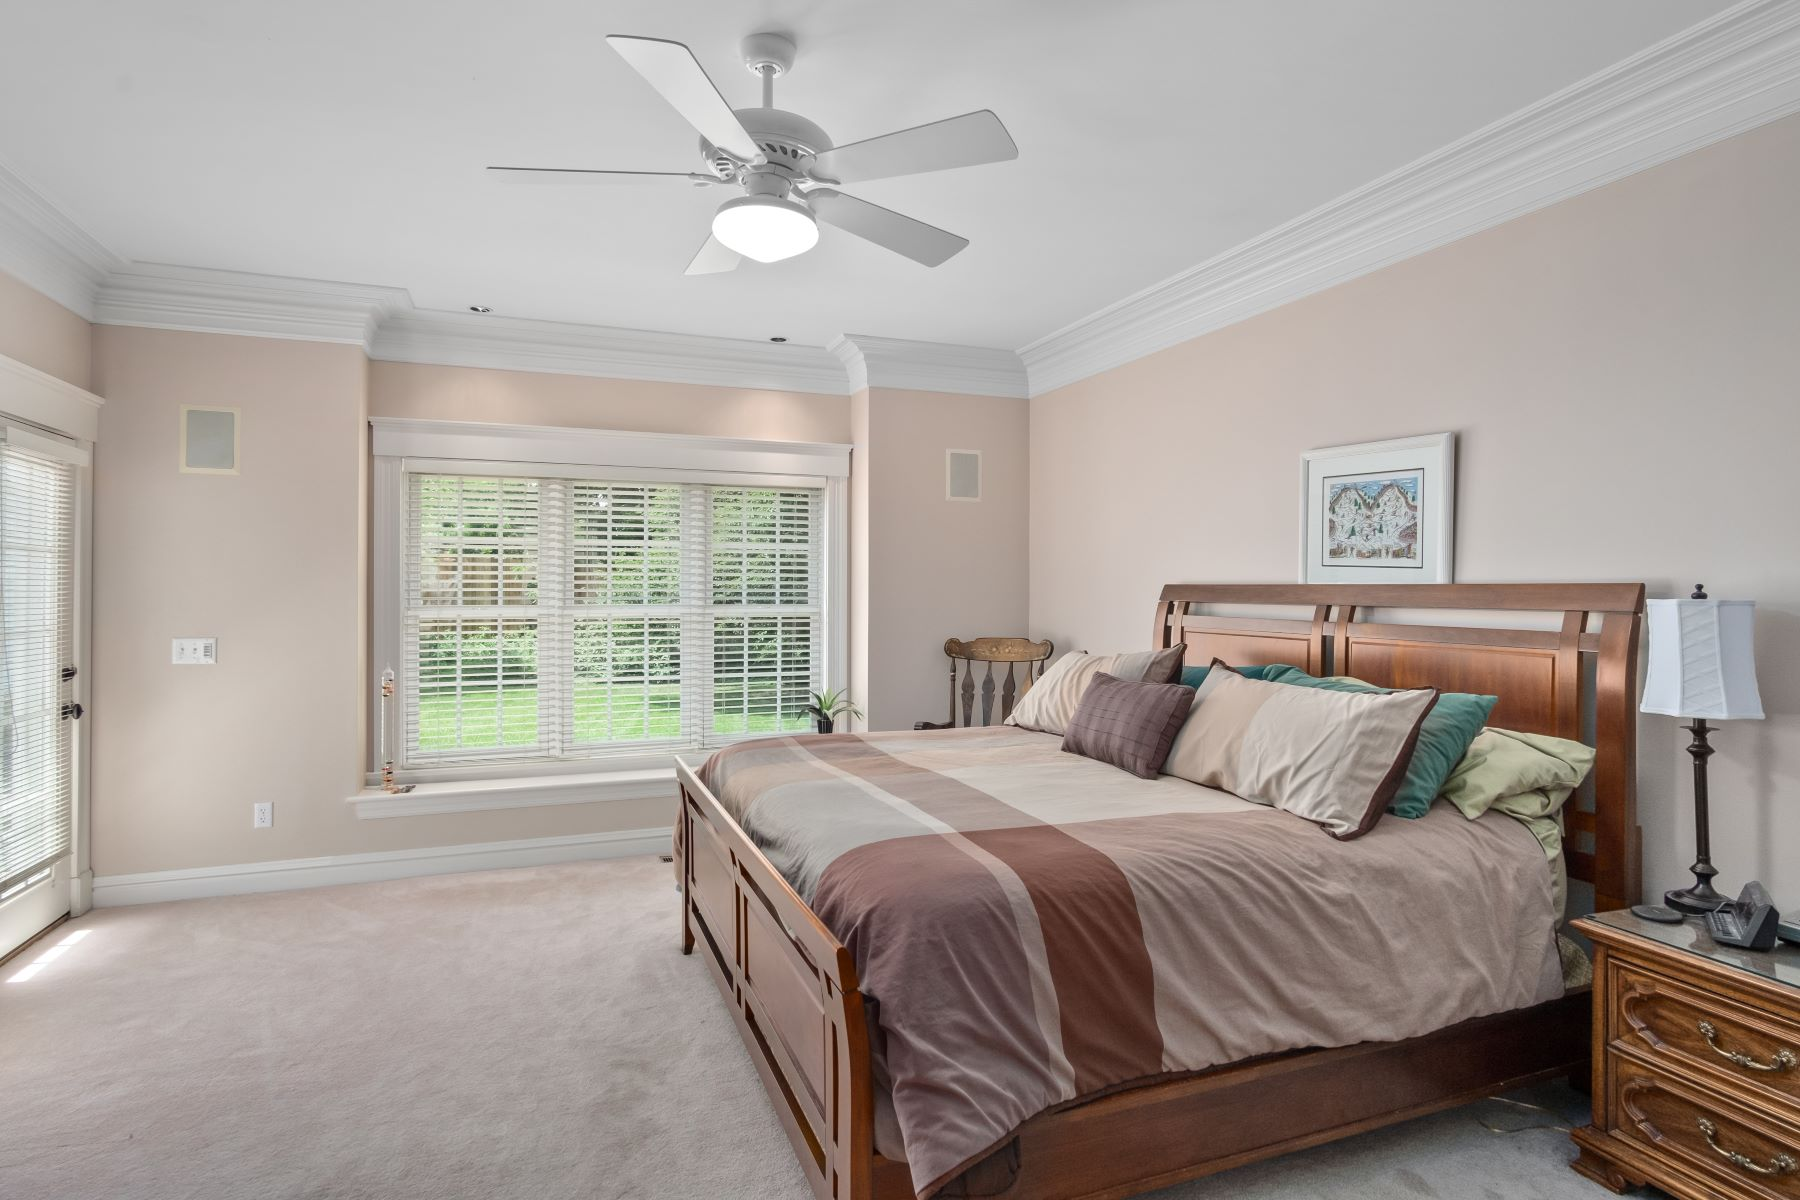 Additional photo for property listing at Stunning 1.5 Story in Ladue Schools 9018 Stonebridge Drive Richmond Heights, Missouri 63117 United States